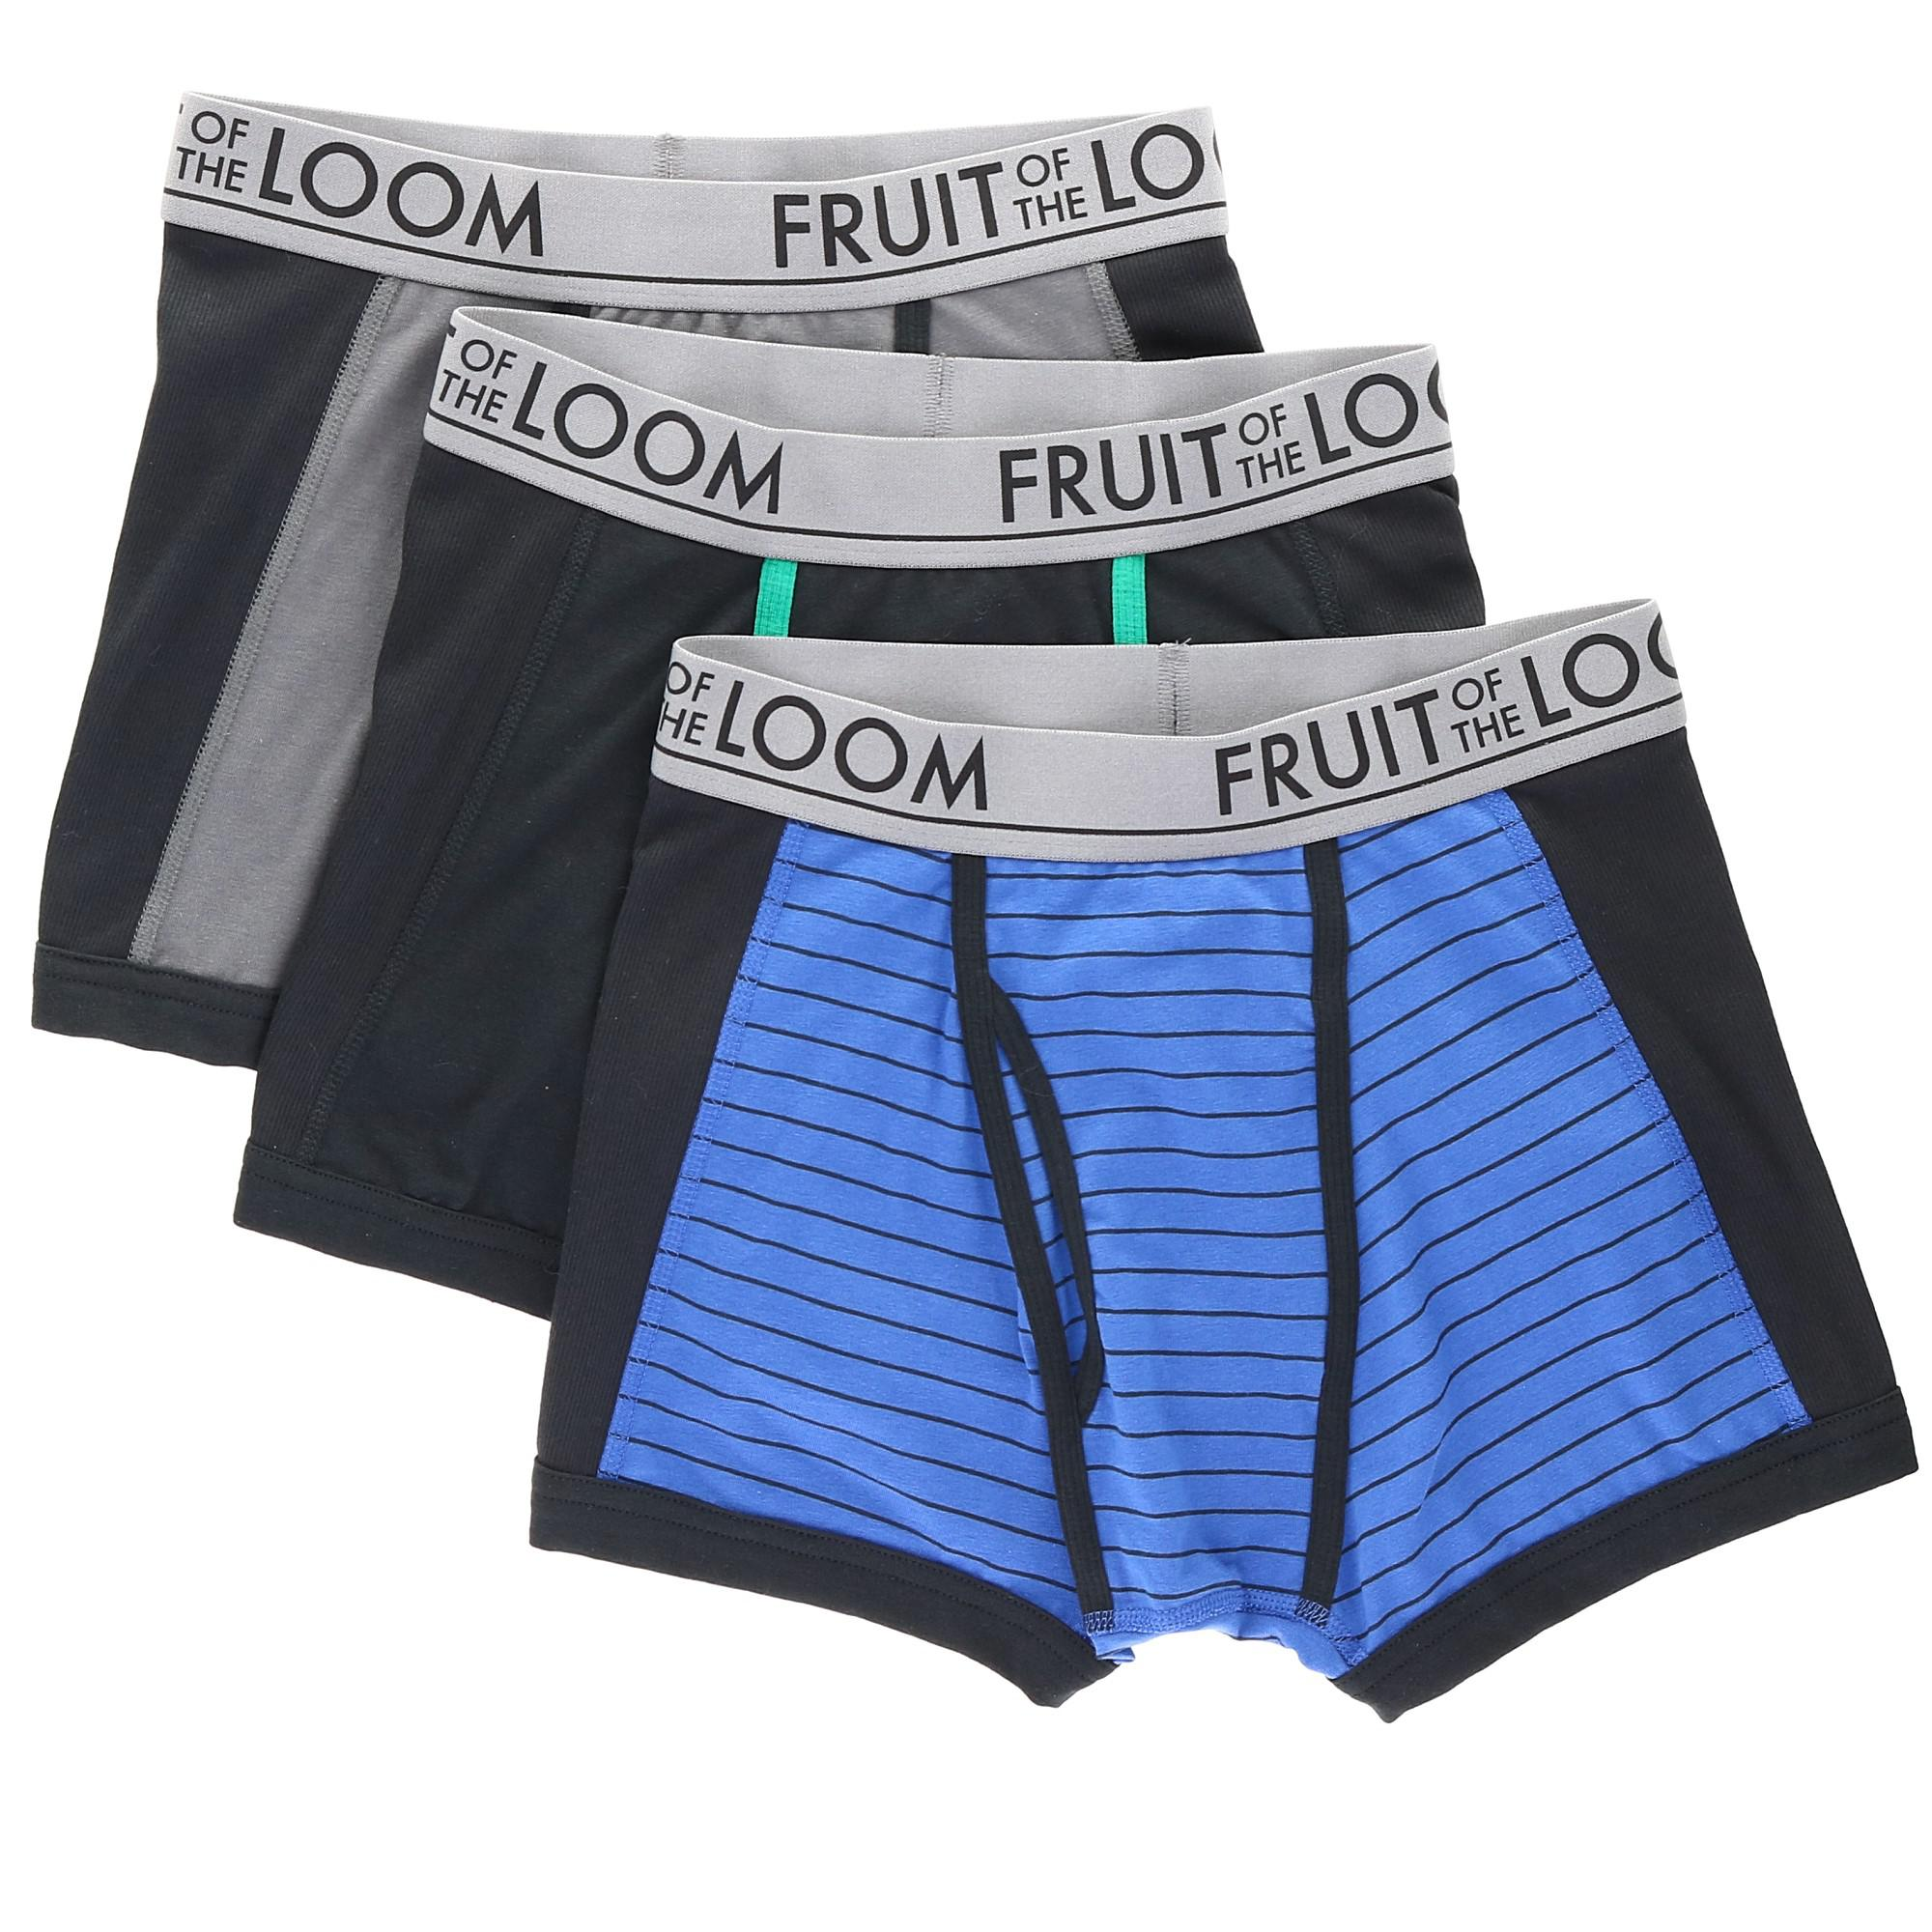 210b664c147ee1 Details about New Fruit of the Loom Men's Short Leg Ultra Flex Boxer Brief (3  Pack)